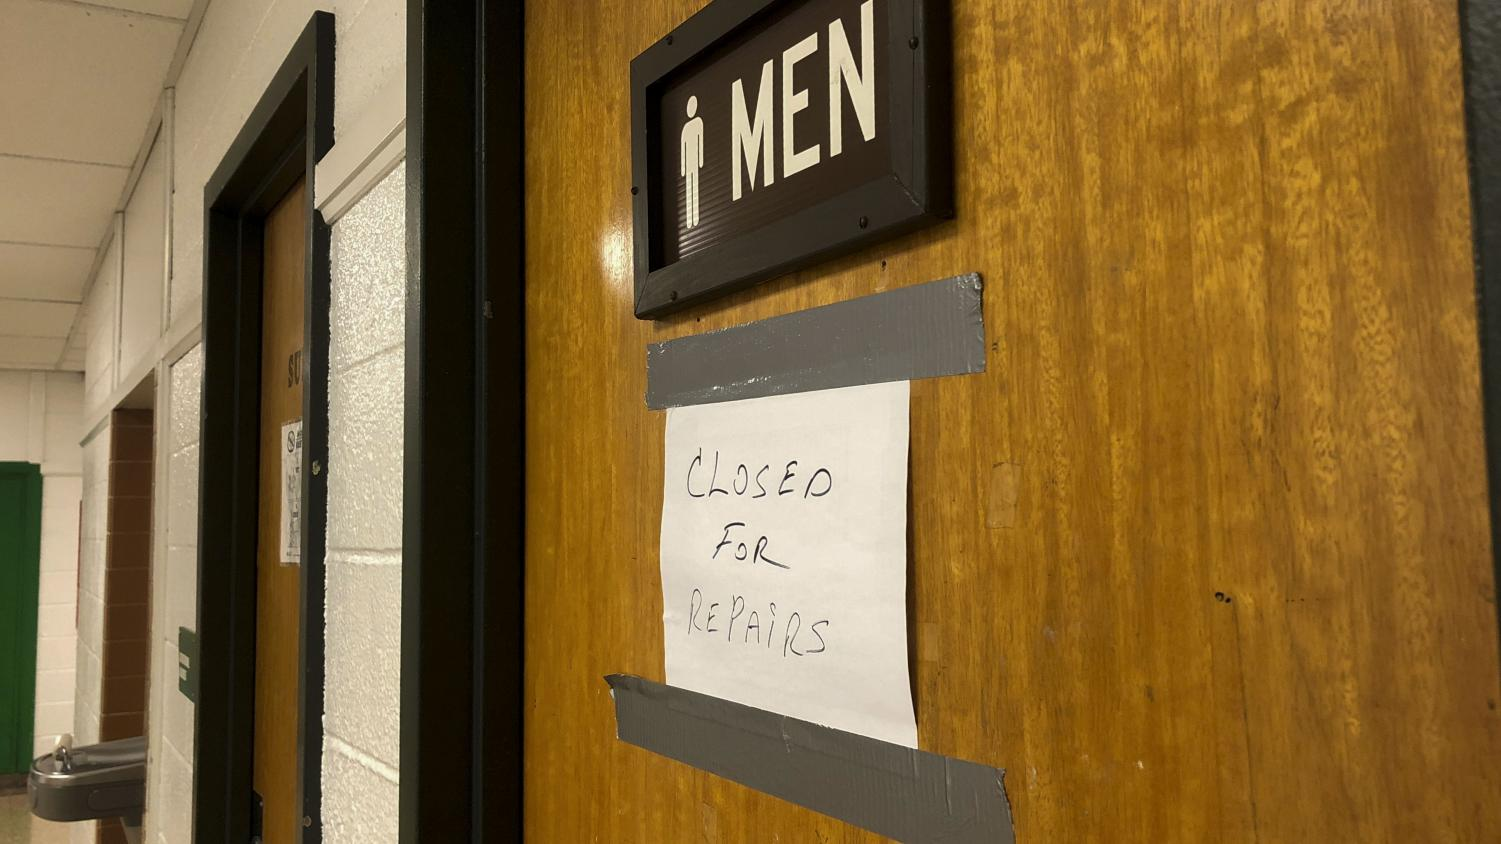 The second floor boys bathroom in Pascack Valley has been closed since September. At the recent PVRHSD Board of Education Meeting, it was revealed that this bathroom and another one were defaced with anti-Semitic illustrations.